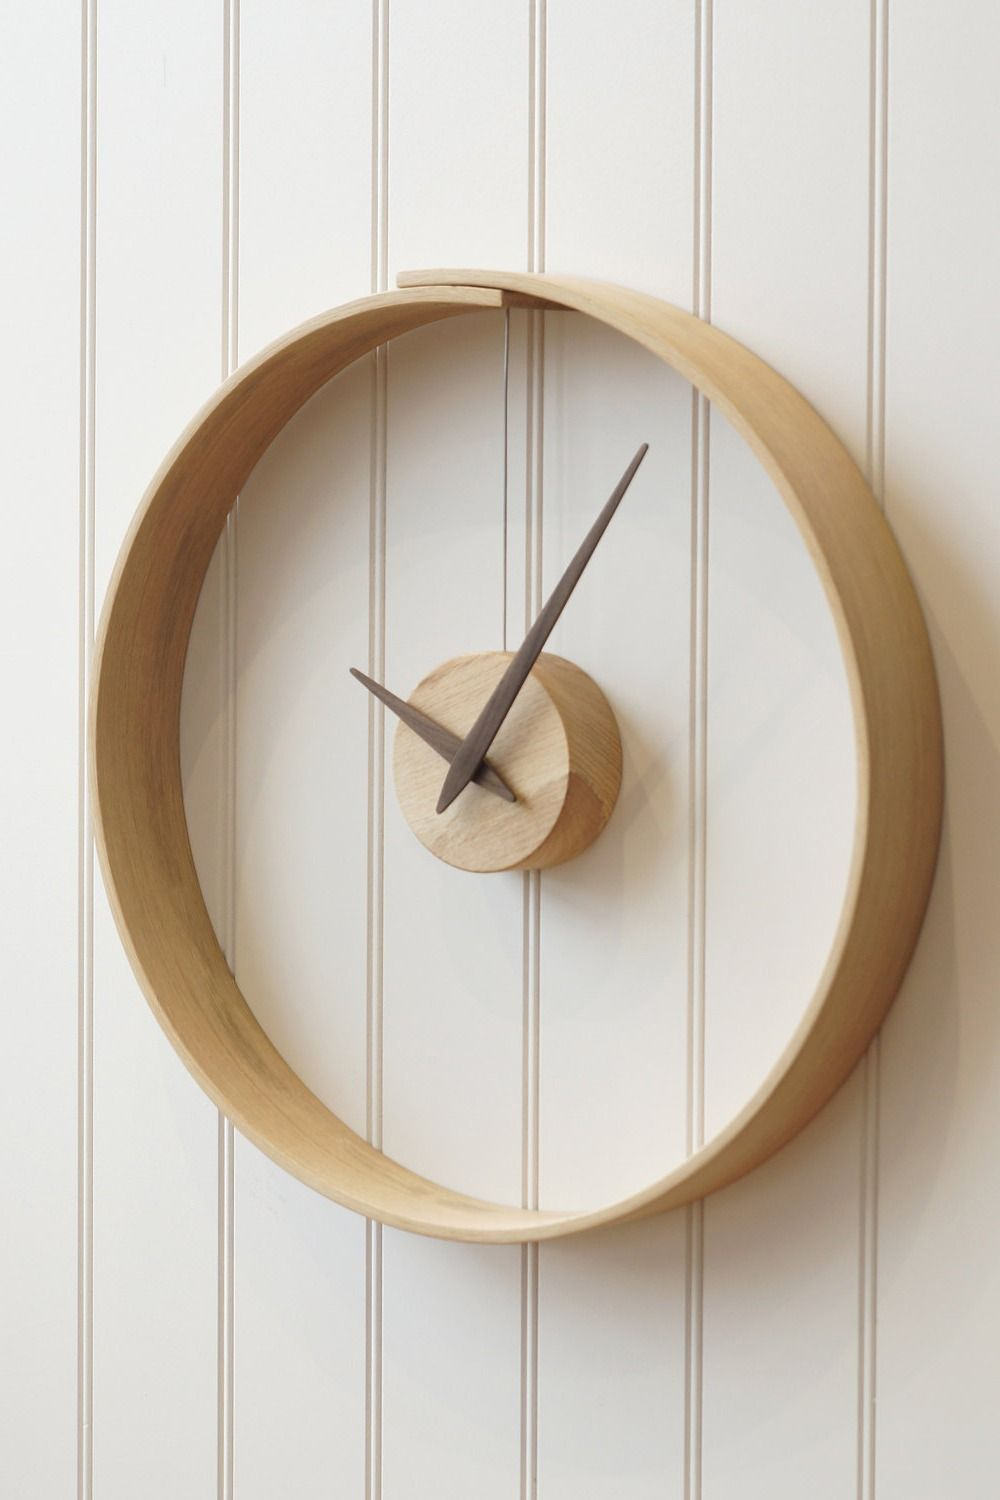 55d69f5e8b193 Functional. Statement piece. This wood clock does it all.